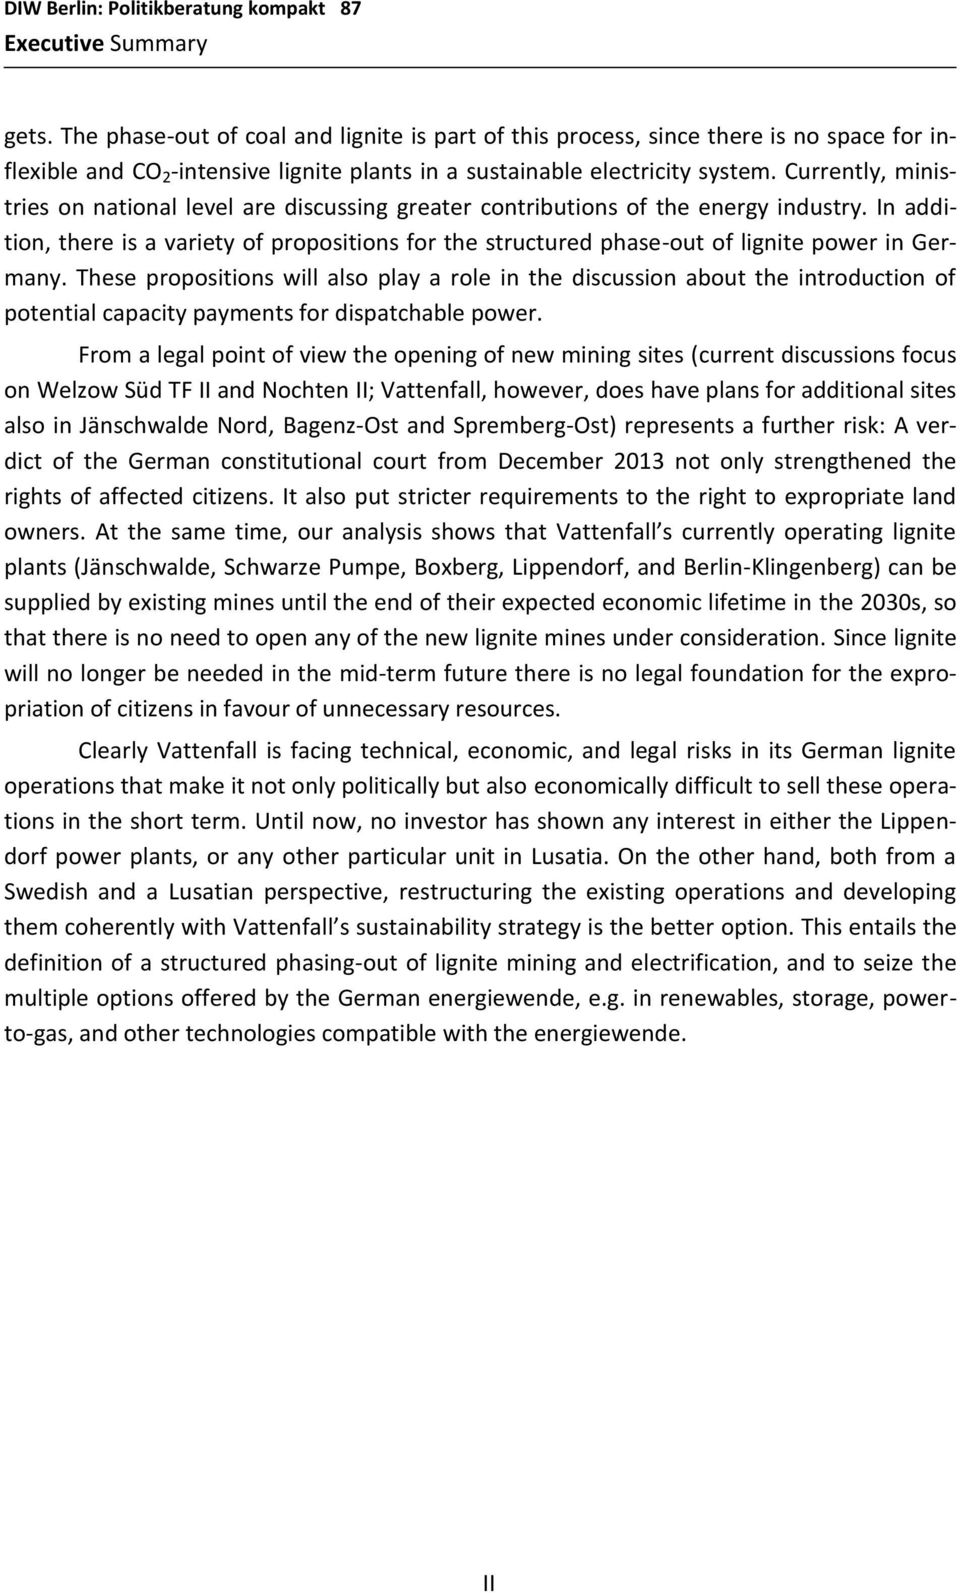 In addition, there is a variety of propositions for the structured phase-out of lignite power in Germany.